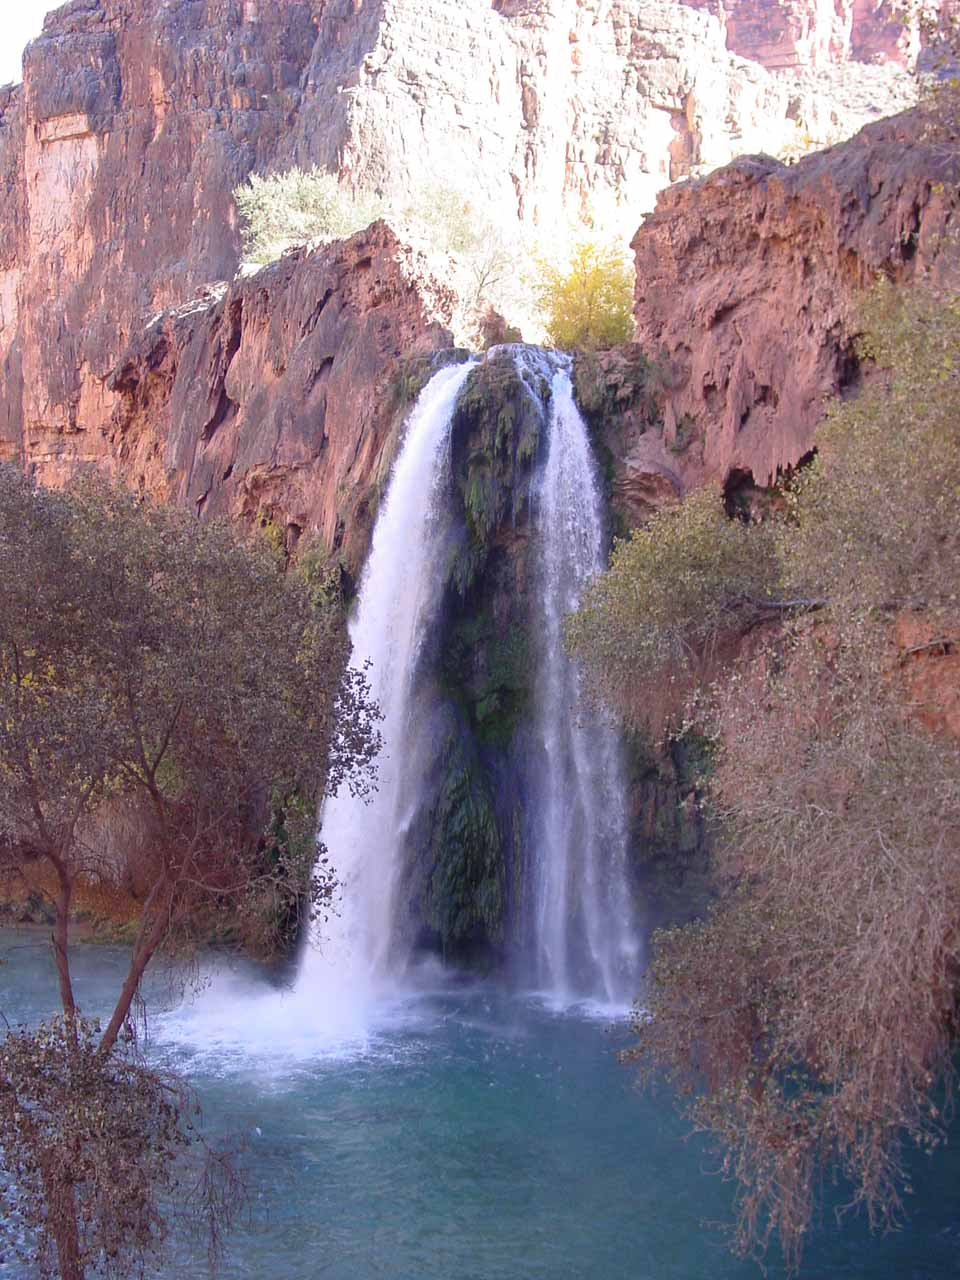 More direct view of Havasu Falls as we descended even further down the trail